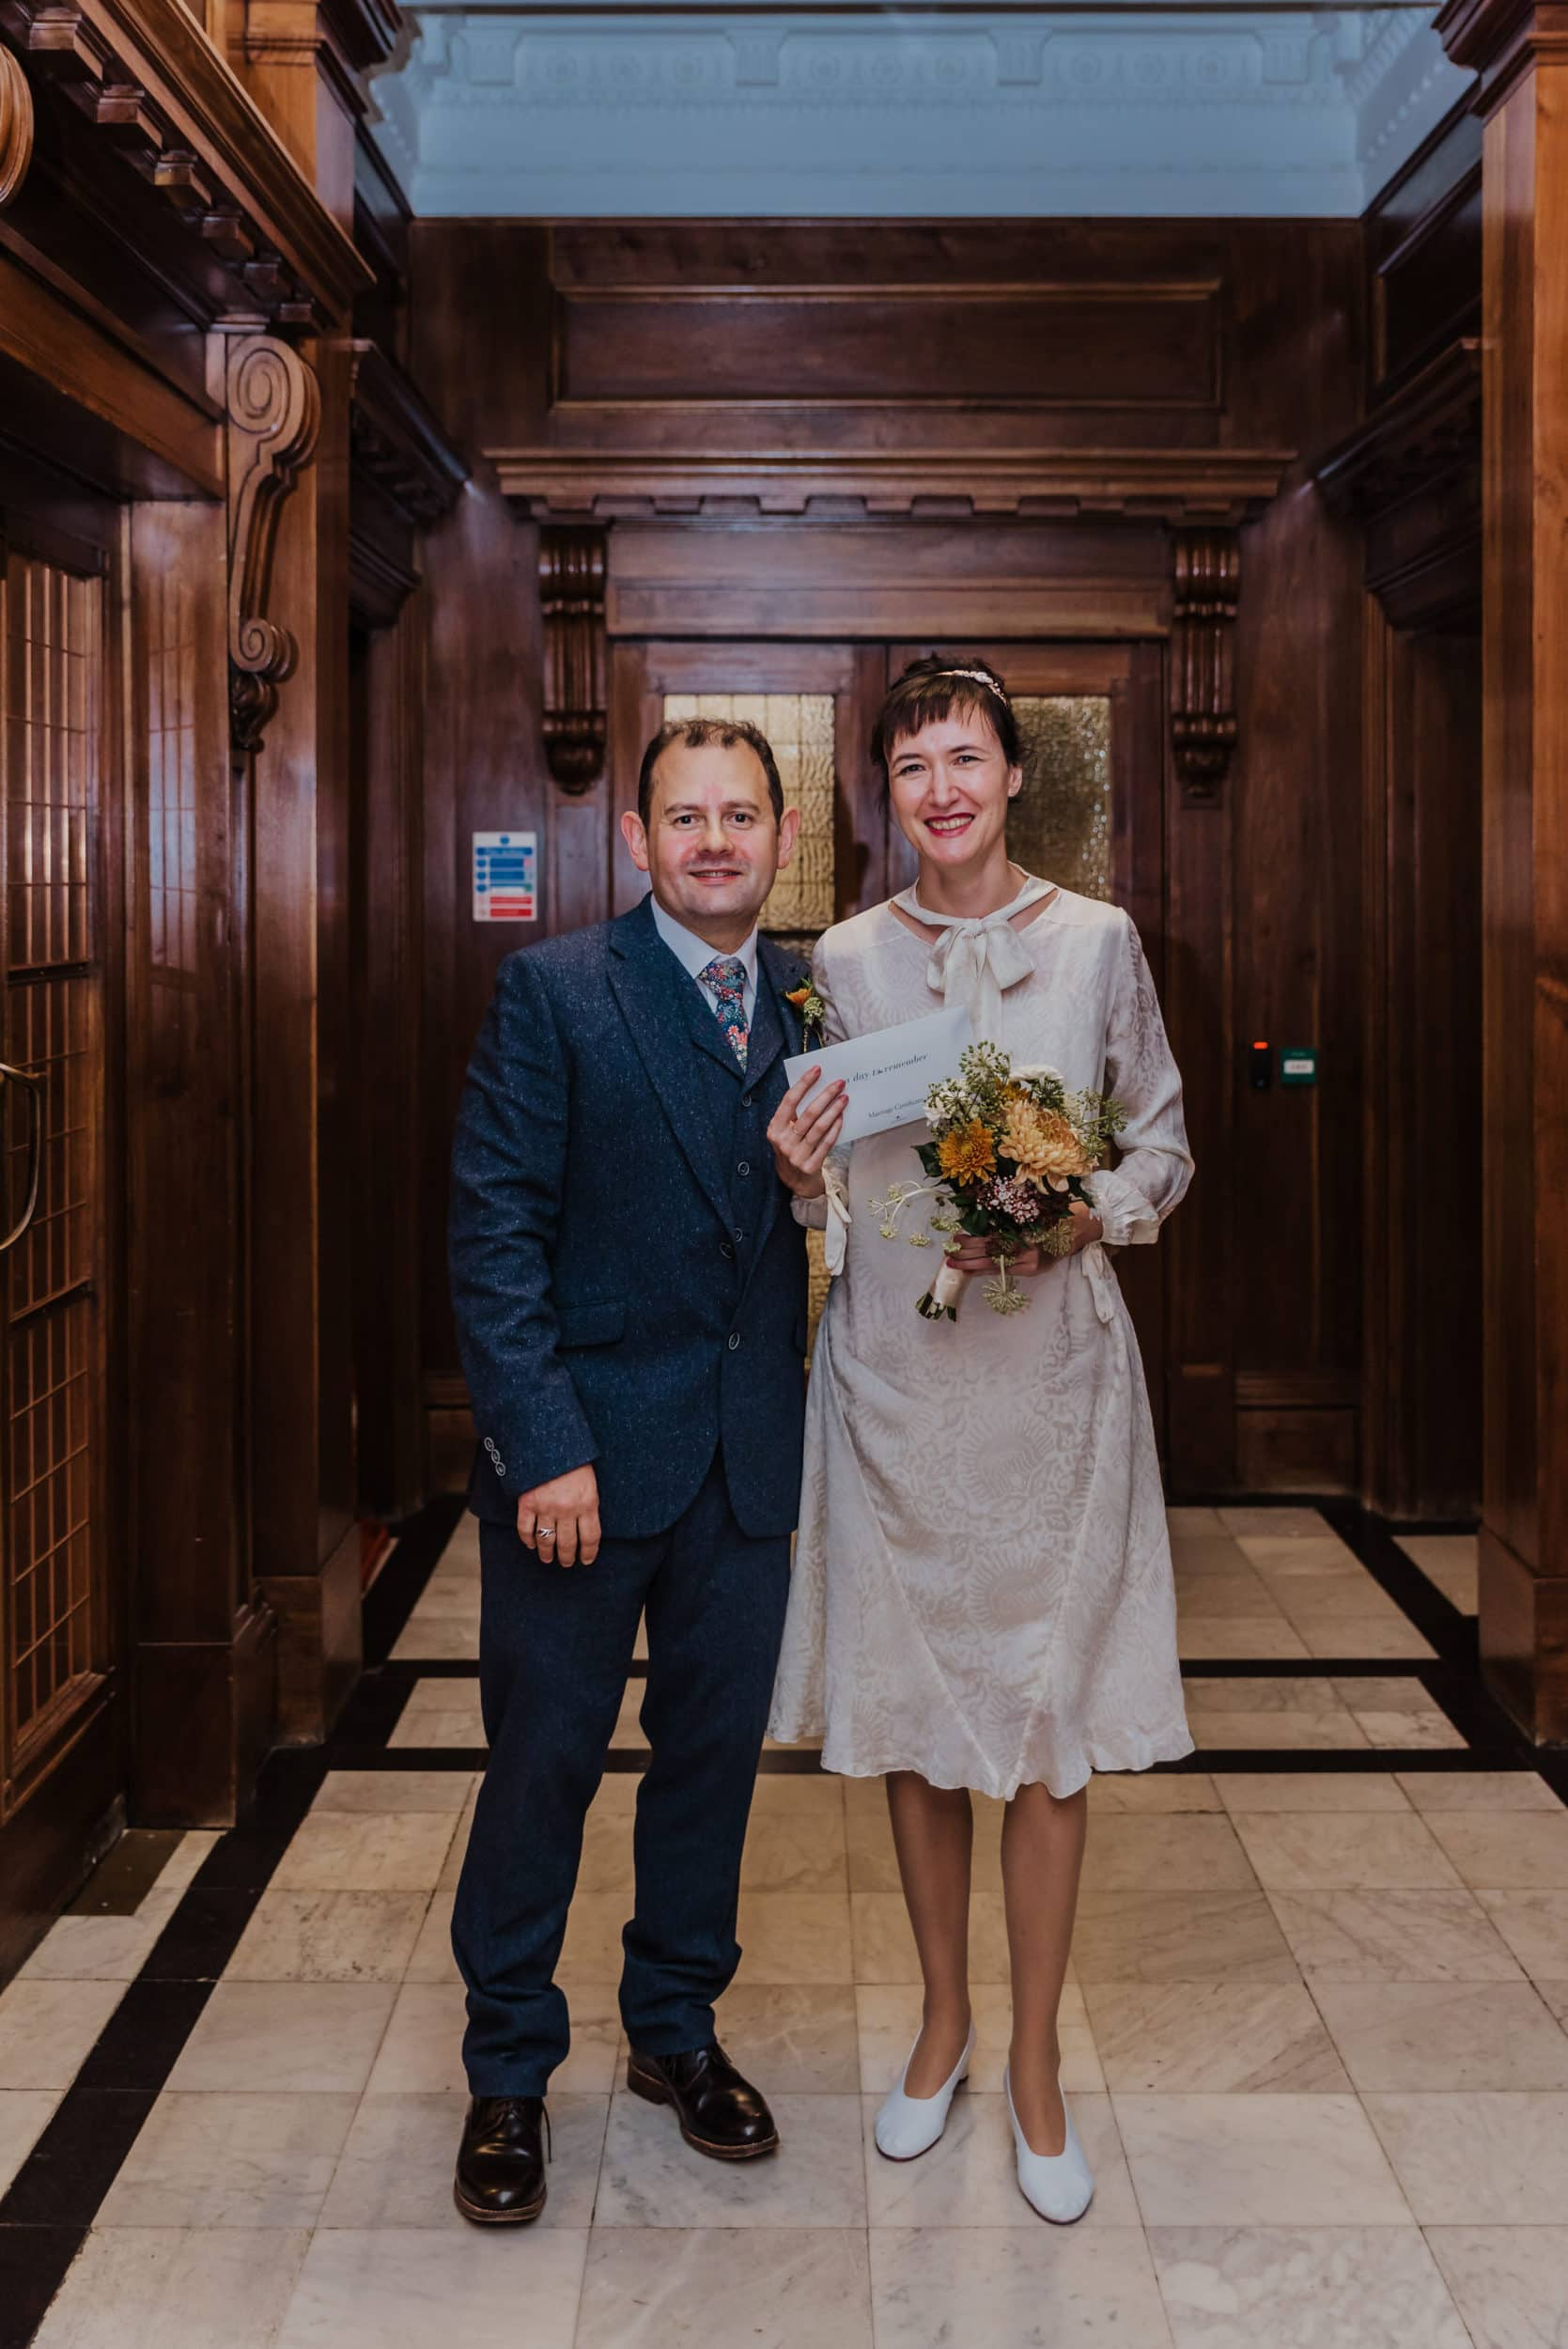 Katya in silk vintage weddign dress, Brett in blue suit at the Old Marylebone registry office London marriage certificate ceremony